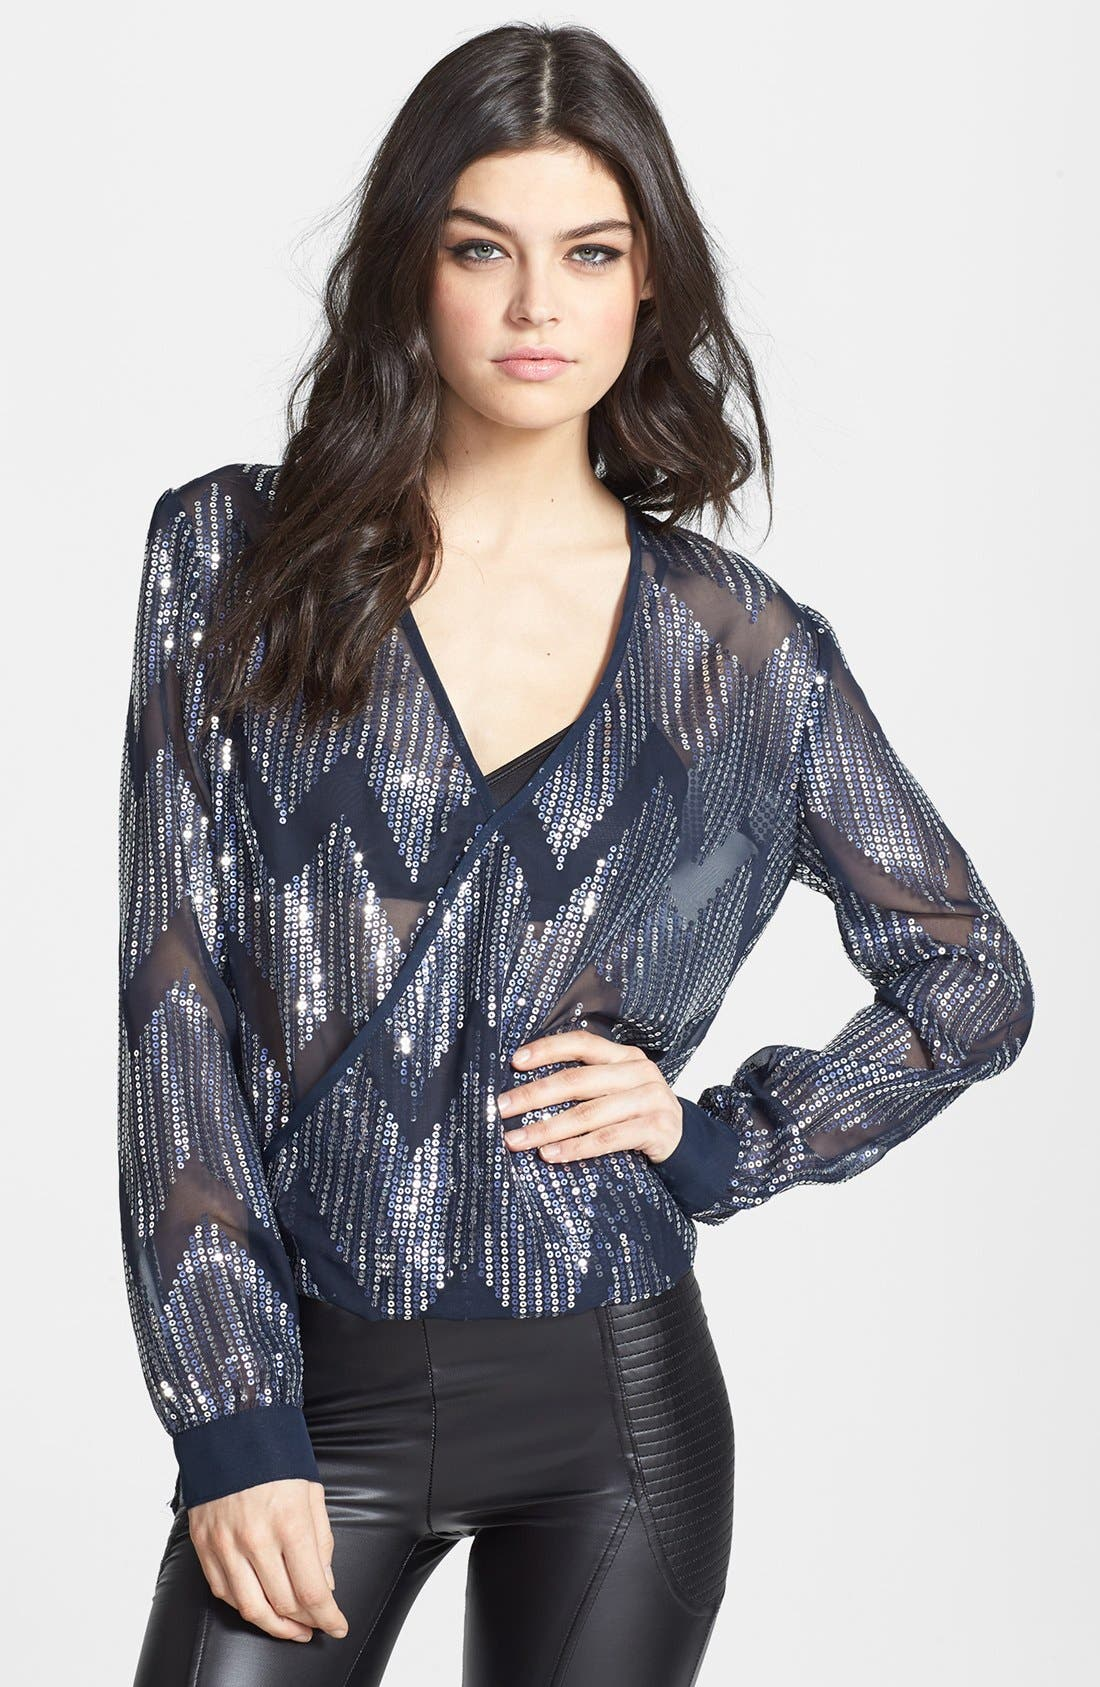 Alternate Image 1 Selected - Wayf Sequin Chiffon Surplice Top